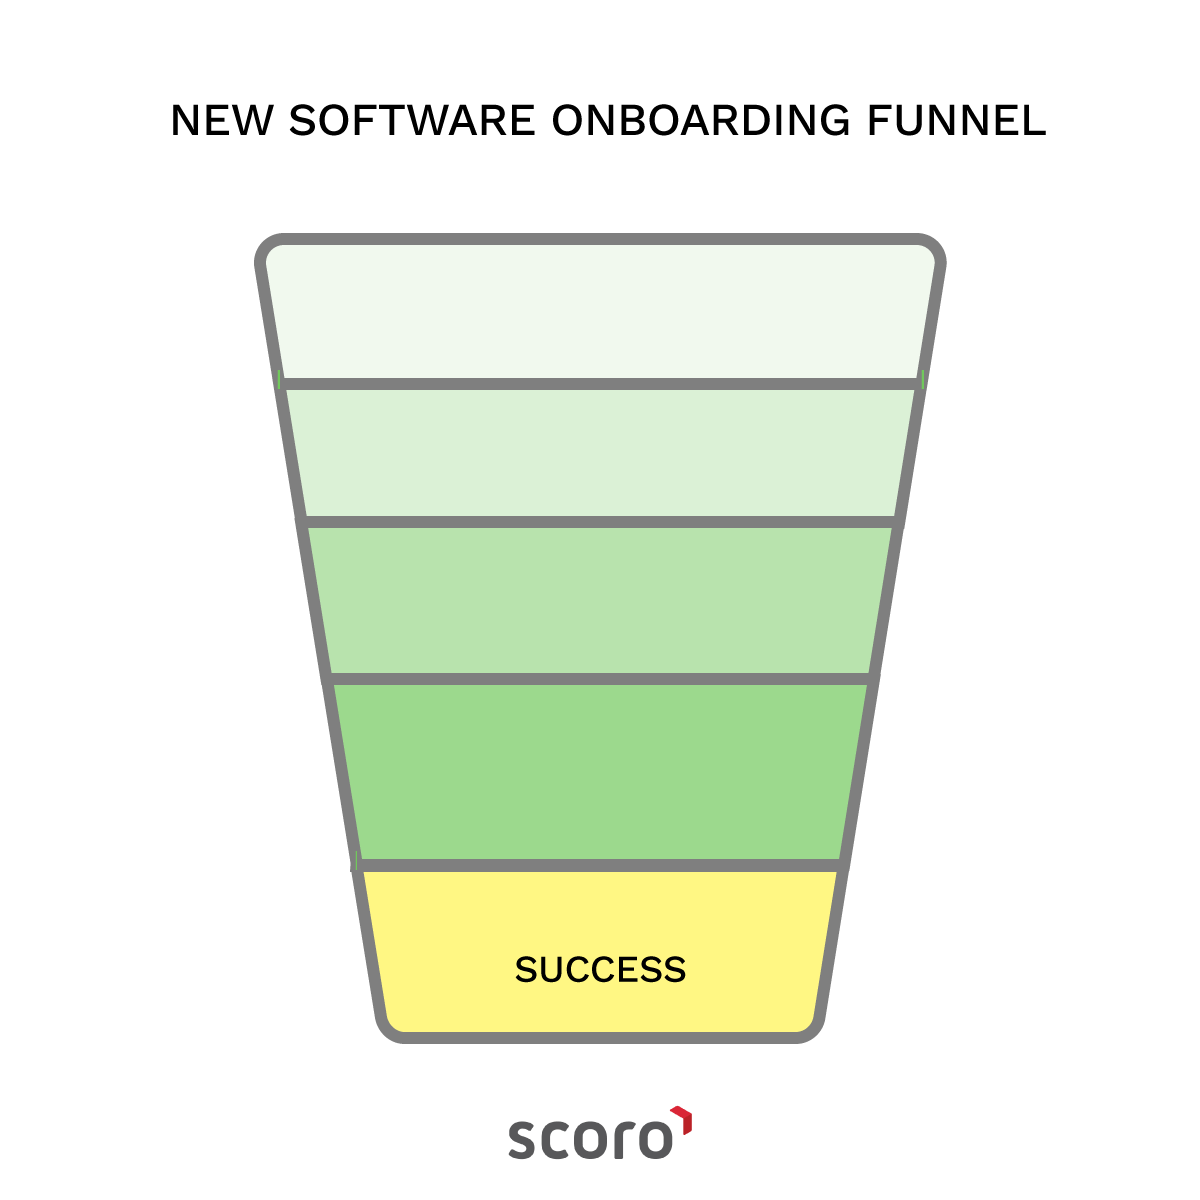 new software onboarding funnel success